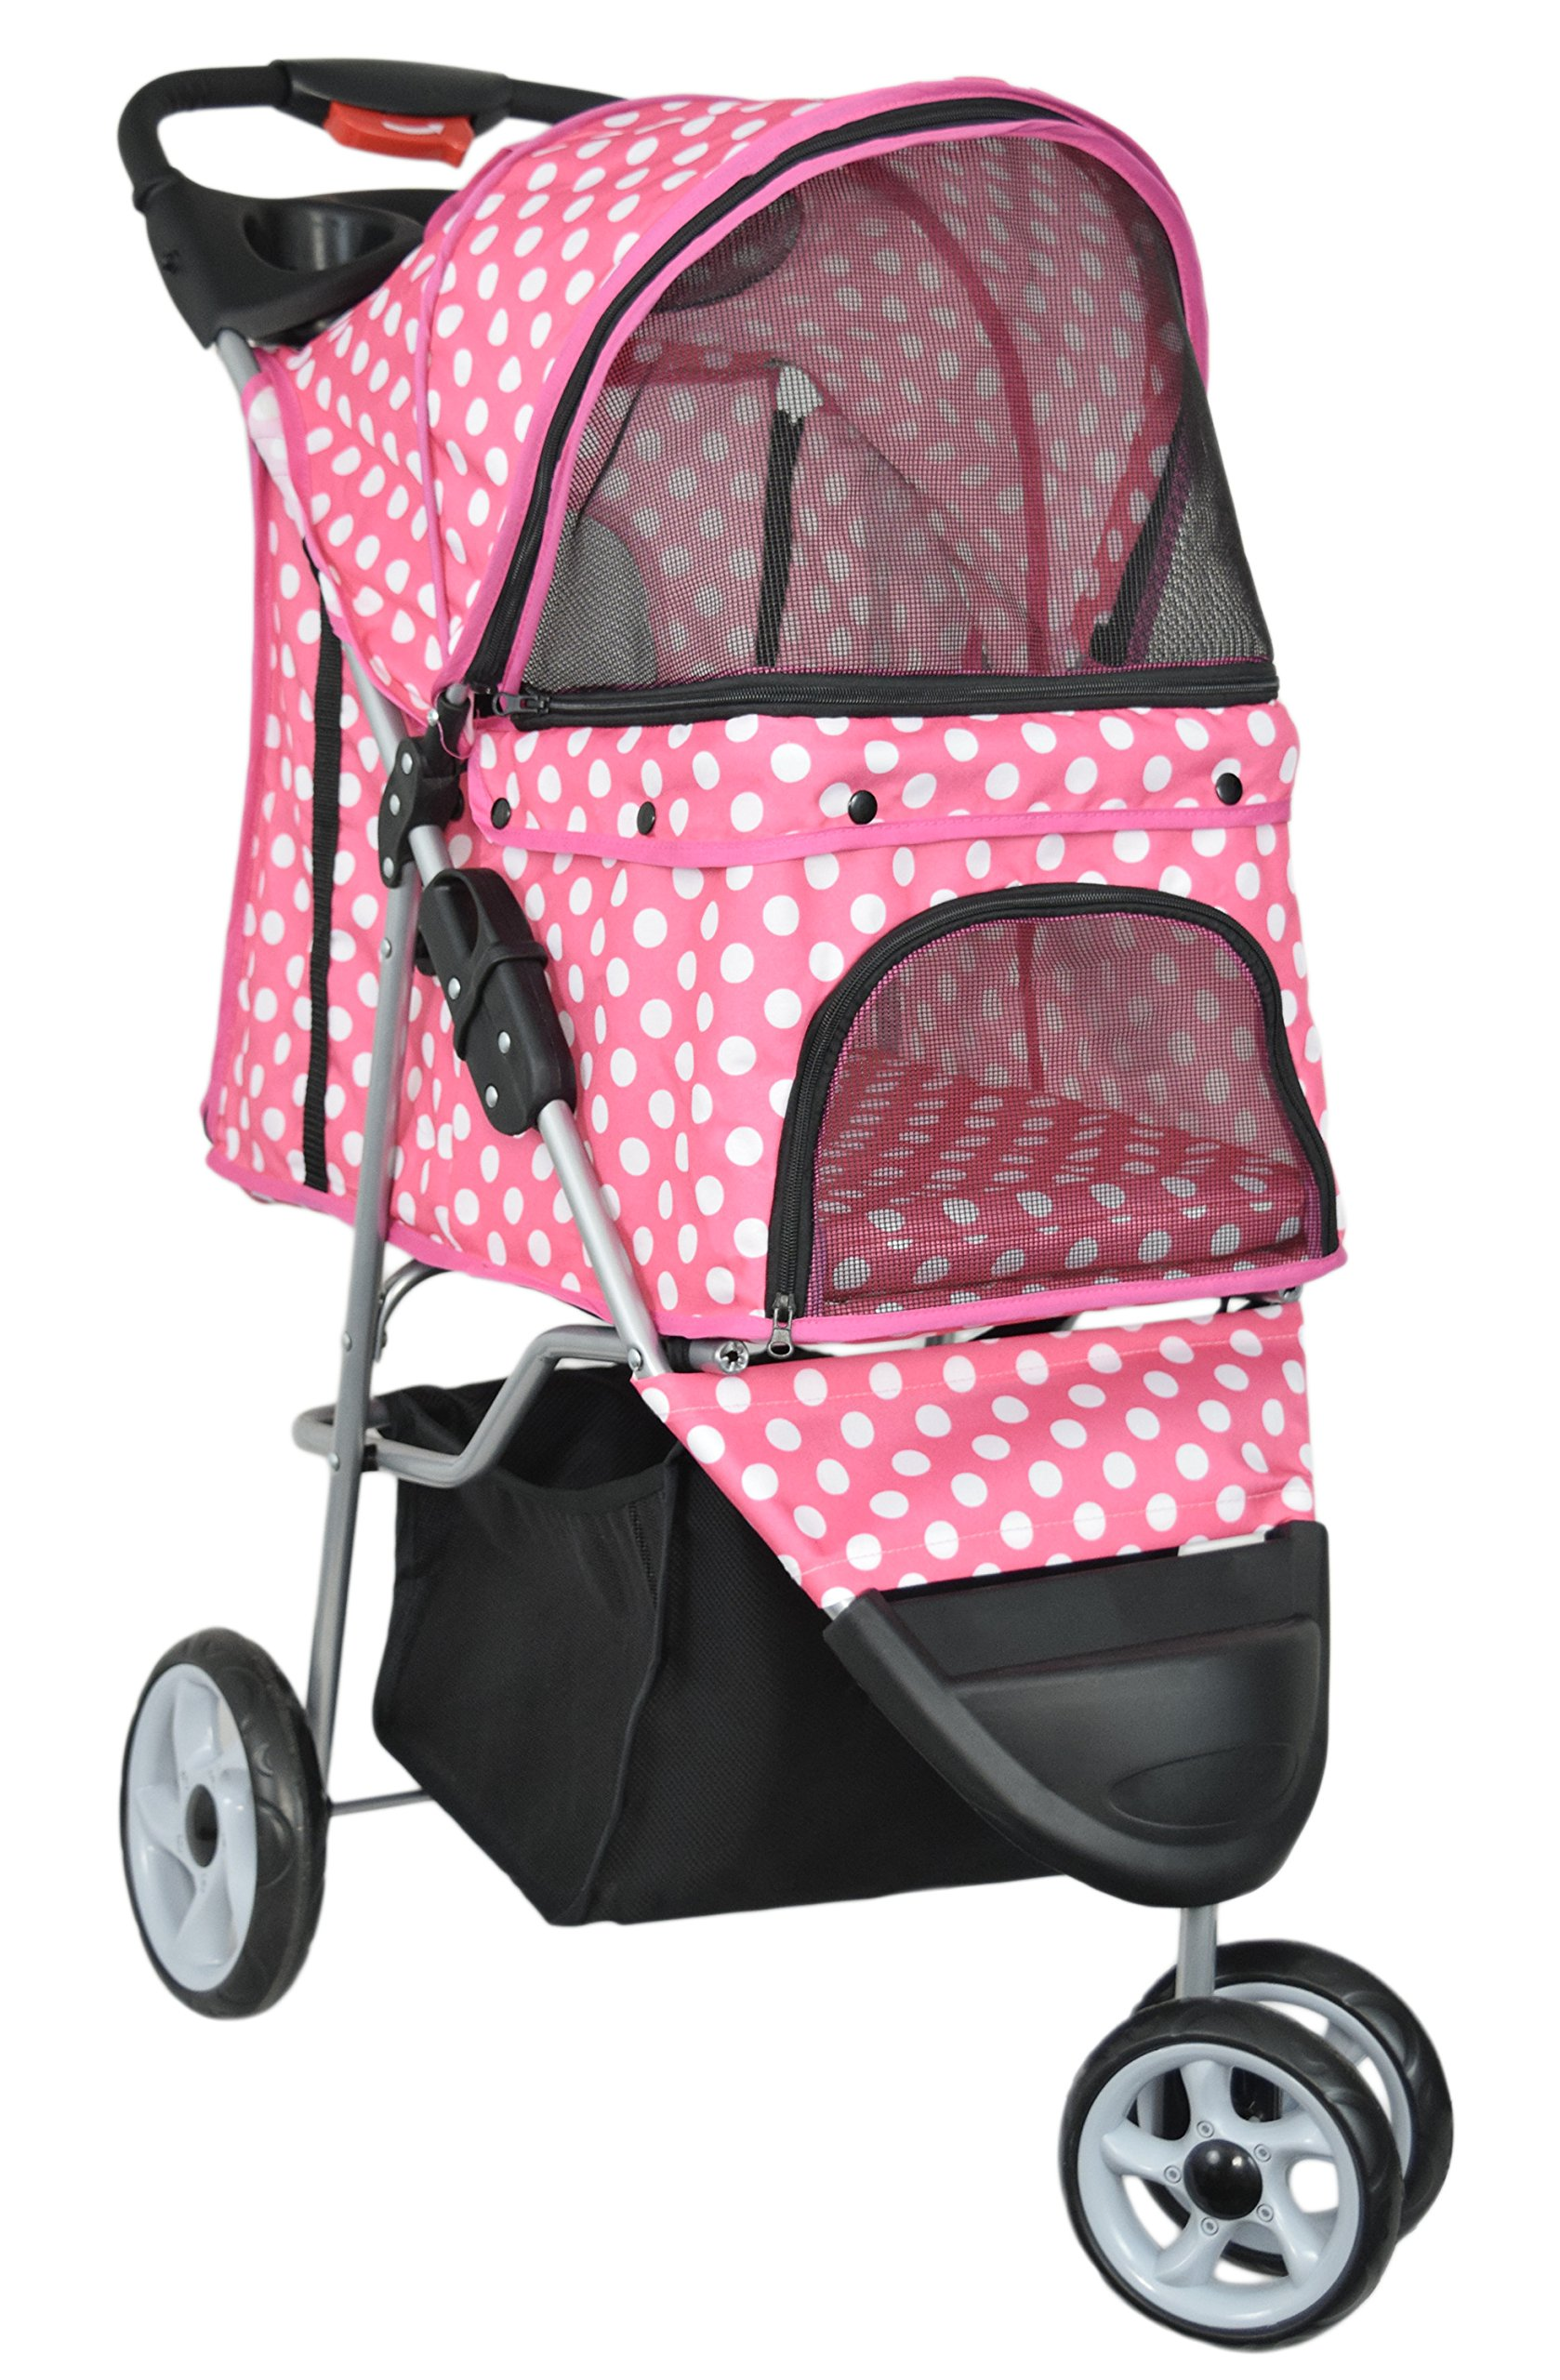 VIVO Three Wheel Pet Stroller, for Cat, Dog and More, Foldable Carrier Strolling Cart, Multiple Colors (Pink & White Polka Dot) by VIVO (Image #1)